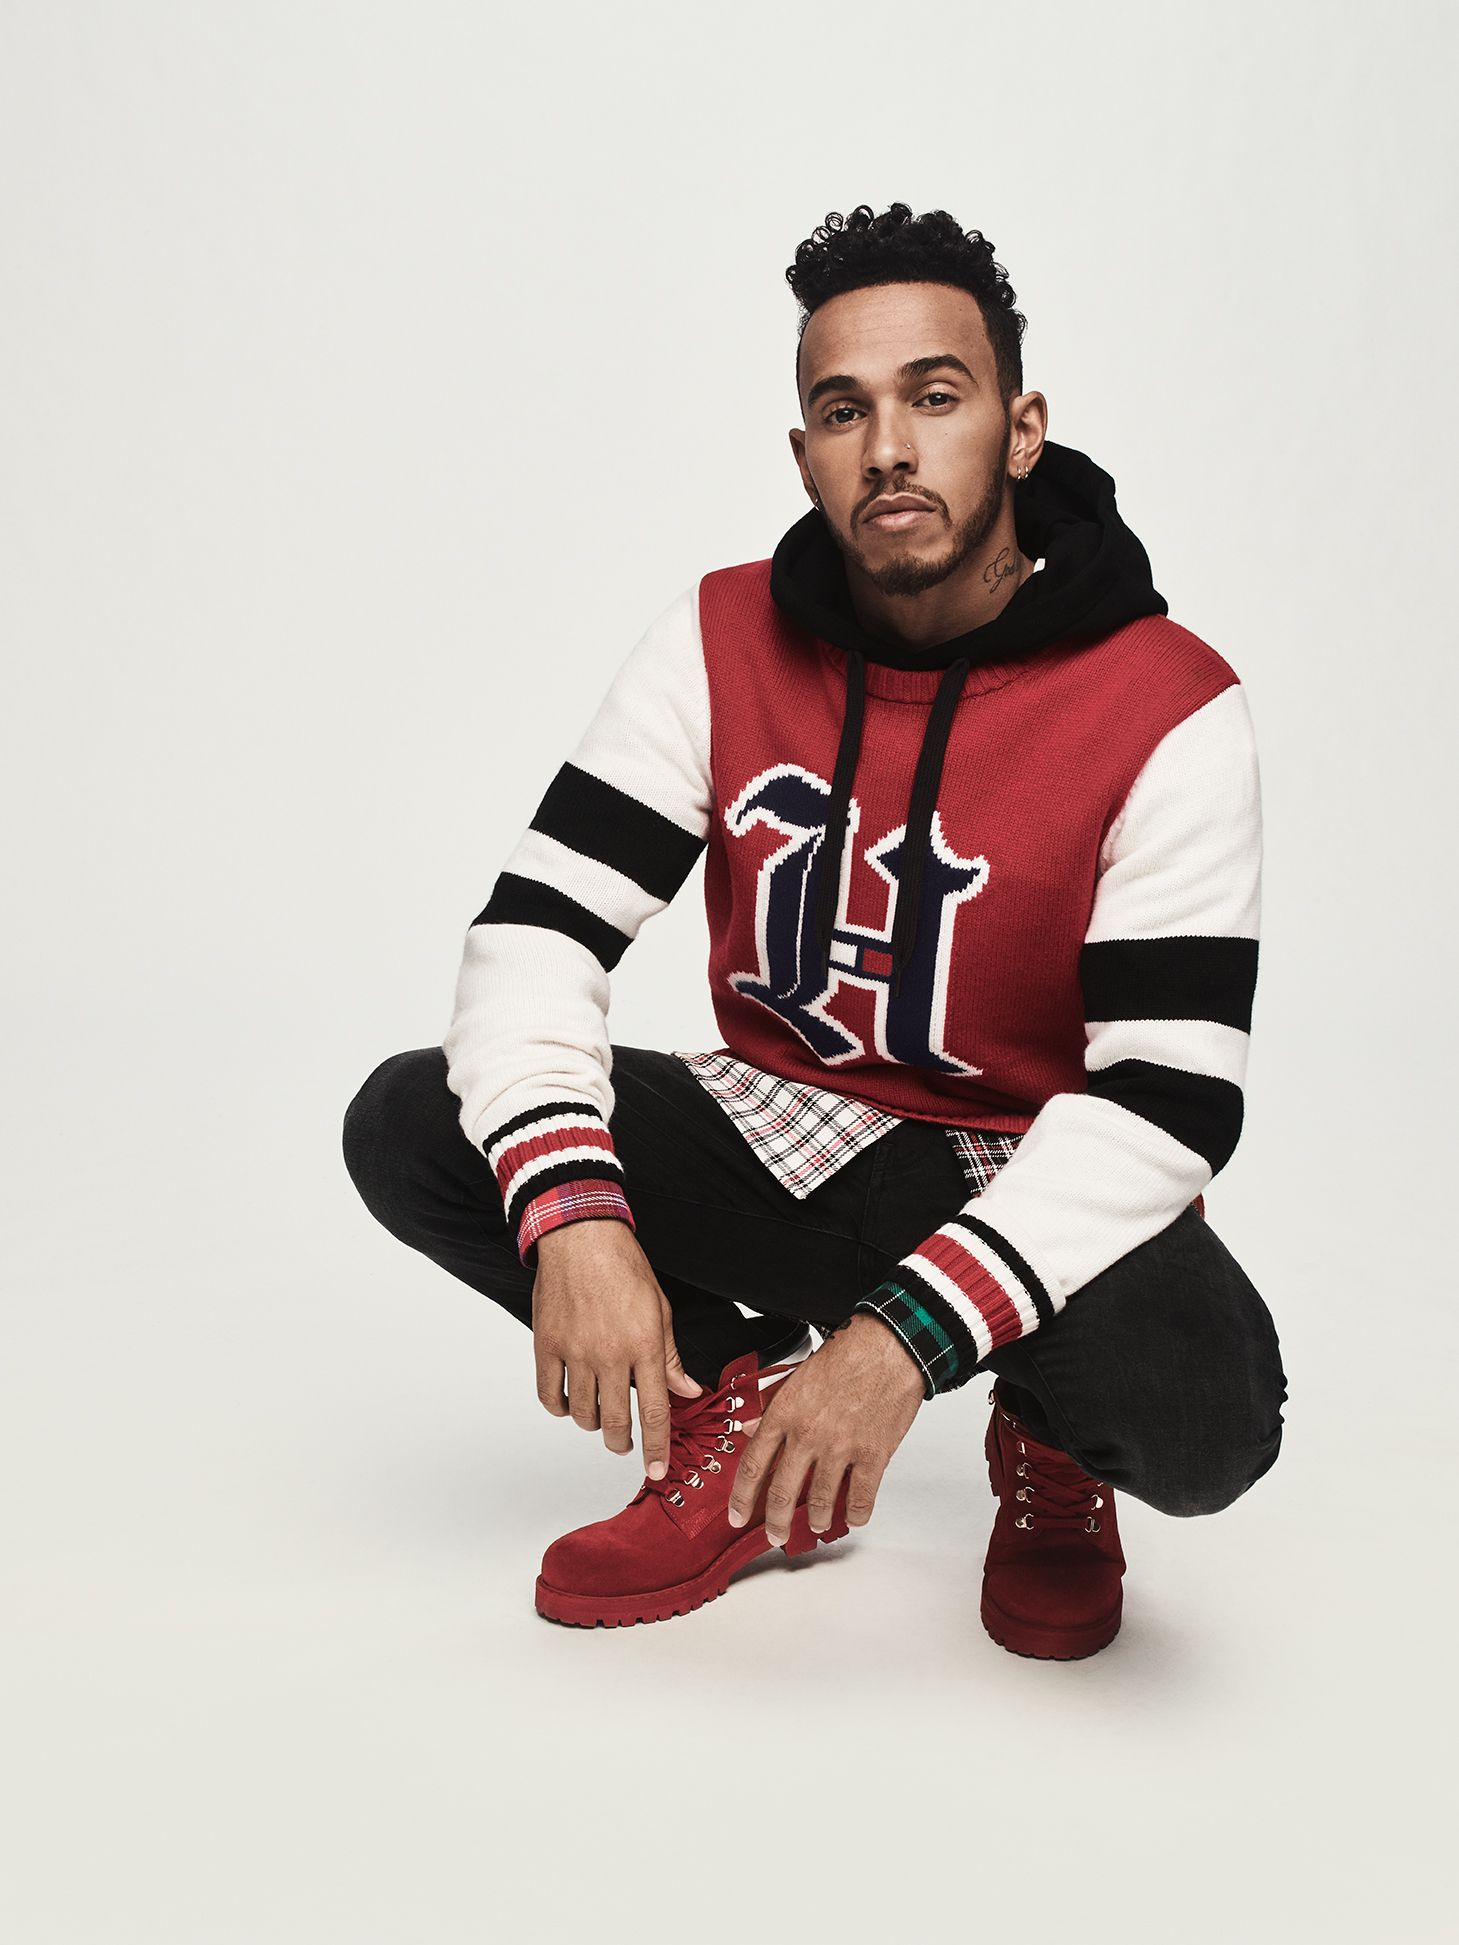 808cb443 Lewis Hamilton Launches Fashion Collection With Tommy Hilfiger ...